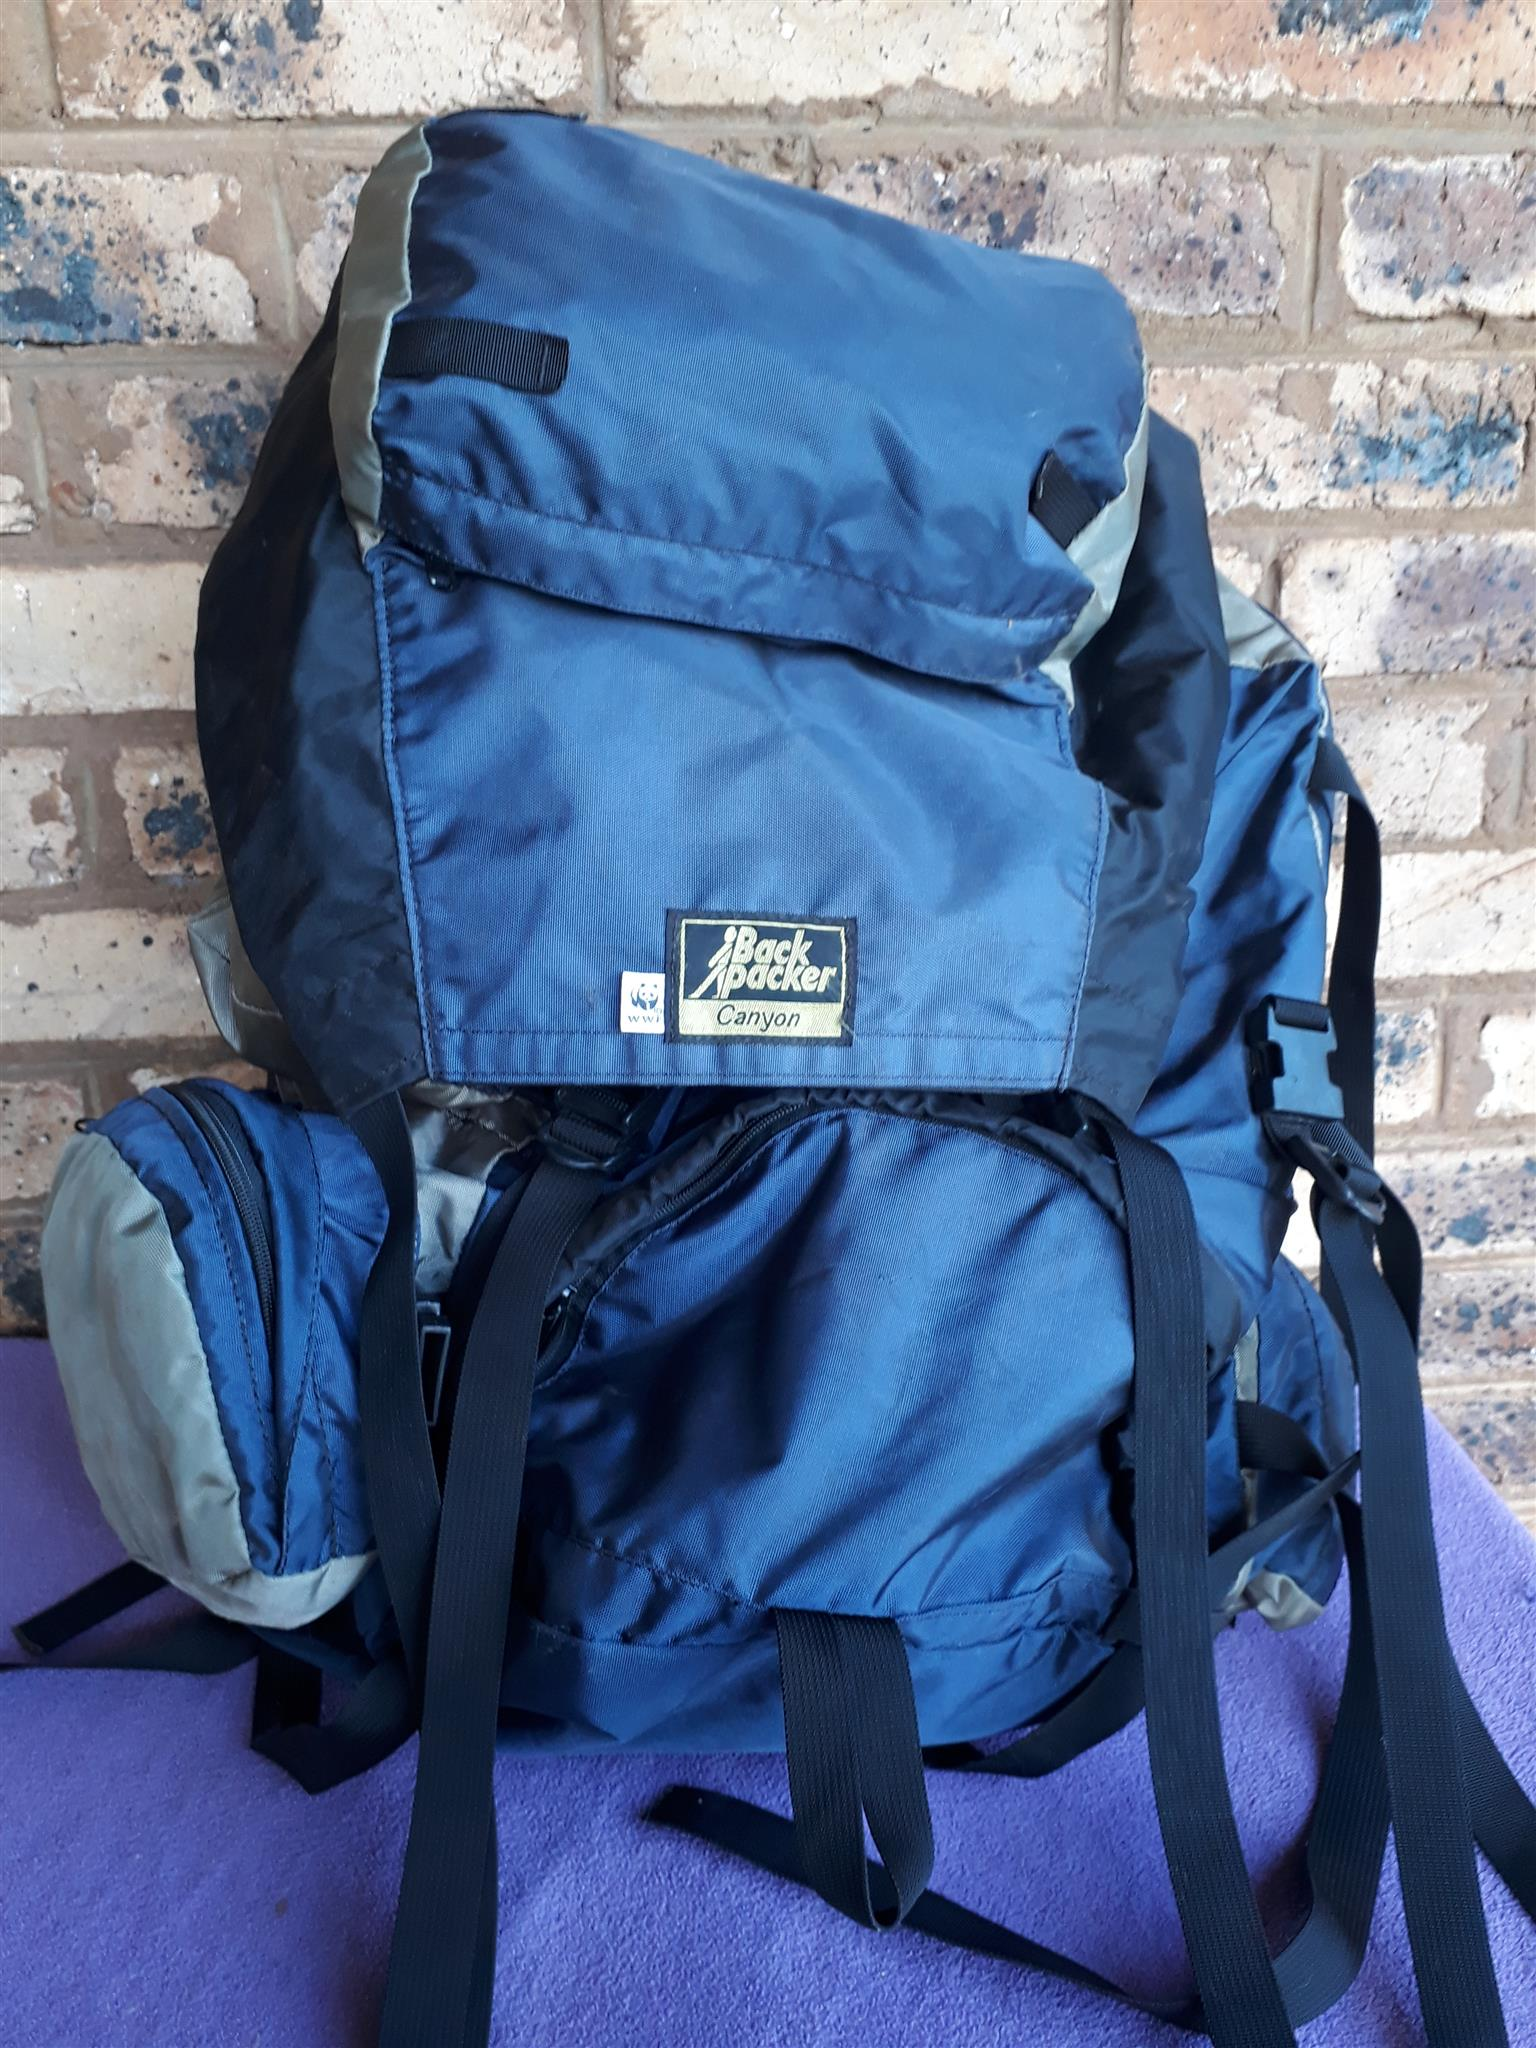 BackPacker Canyon 60L Special WWF edition